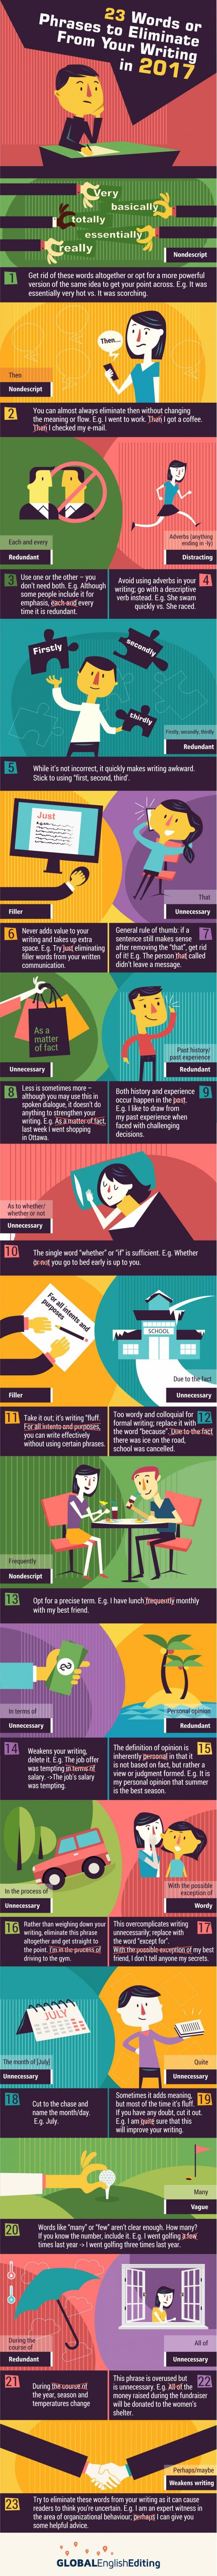 23 Words or Phrases to Eliminate From Your Writing Infographic - http://elearninginfographics.com/words-or-phrases-to-eliminate-from-your-writing-infographic/